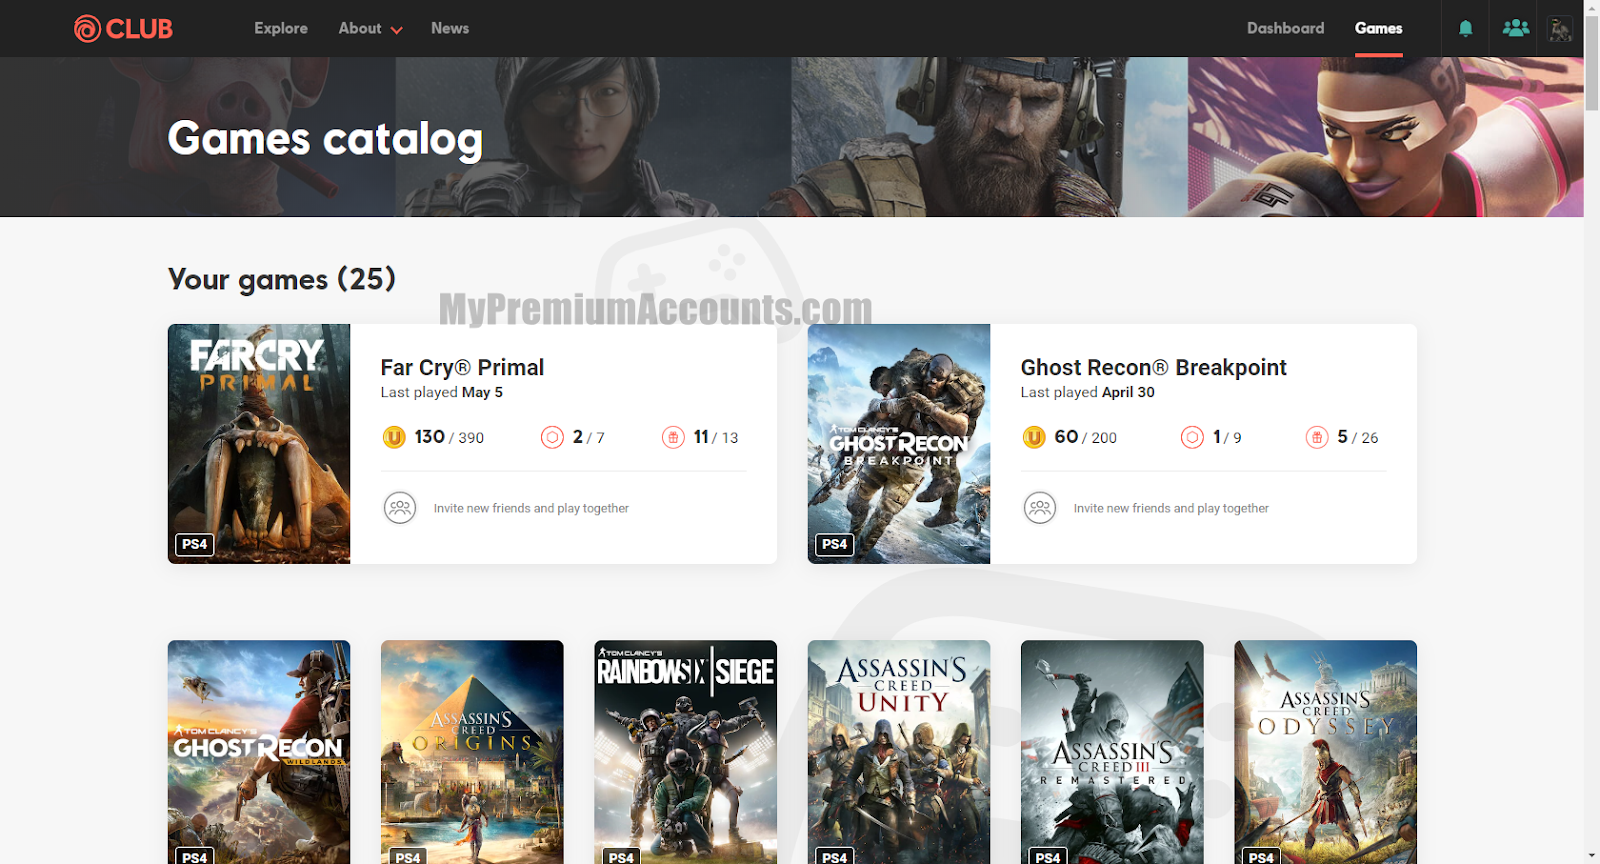 x3k Ubisoft.com (Uplay) Accounts with Games for PC, PS4, XBOX Etc May 22, 2020